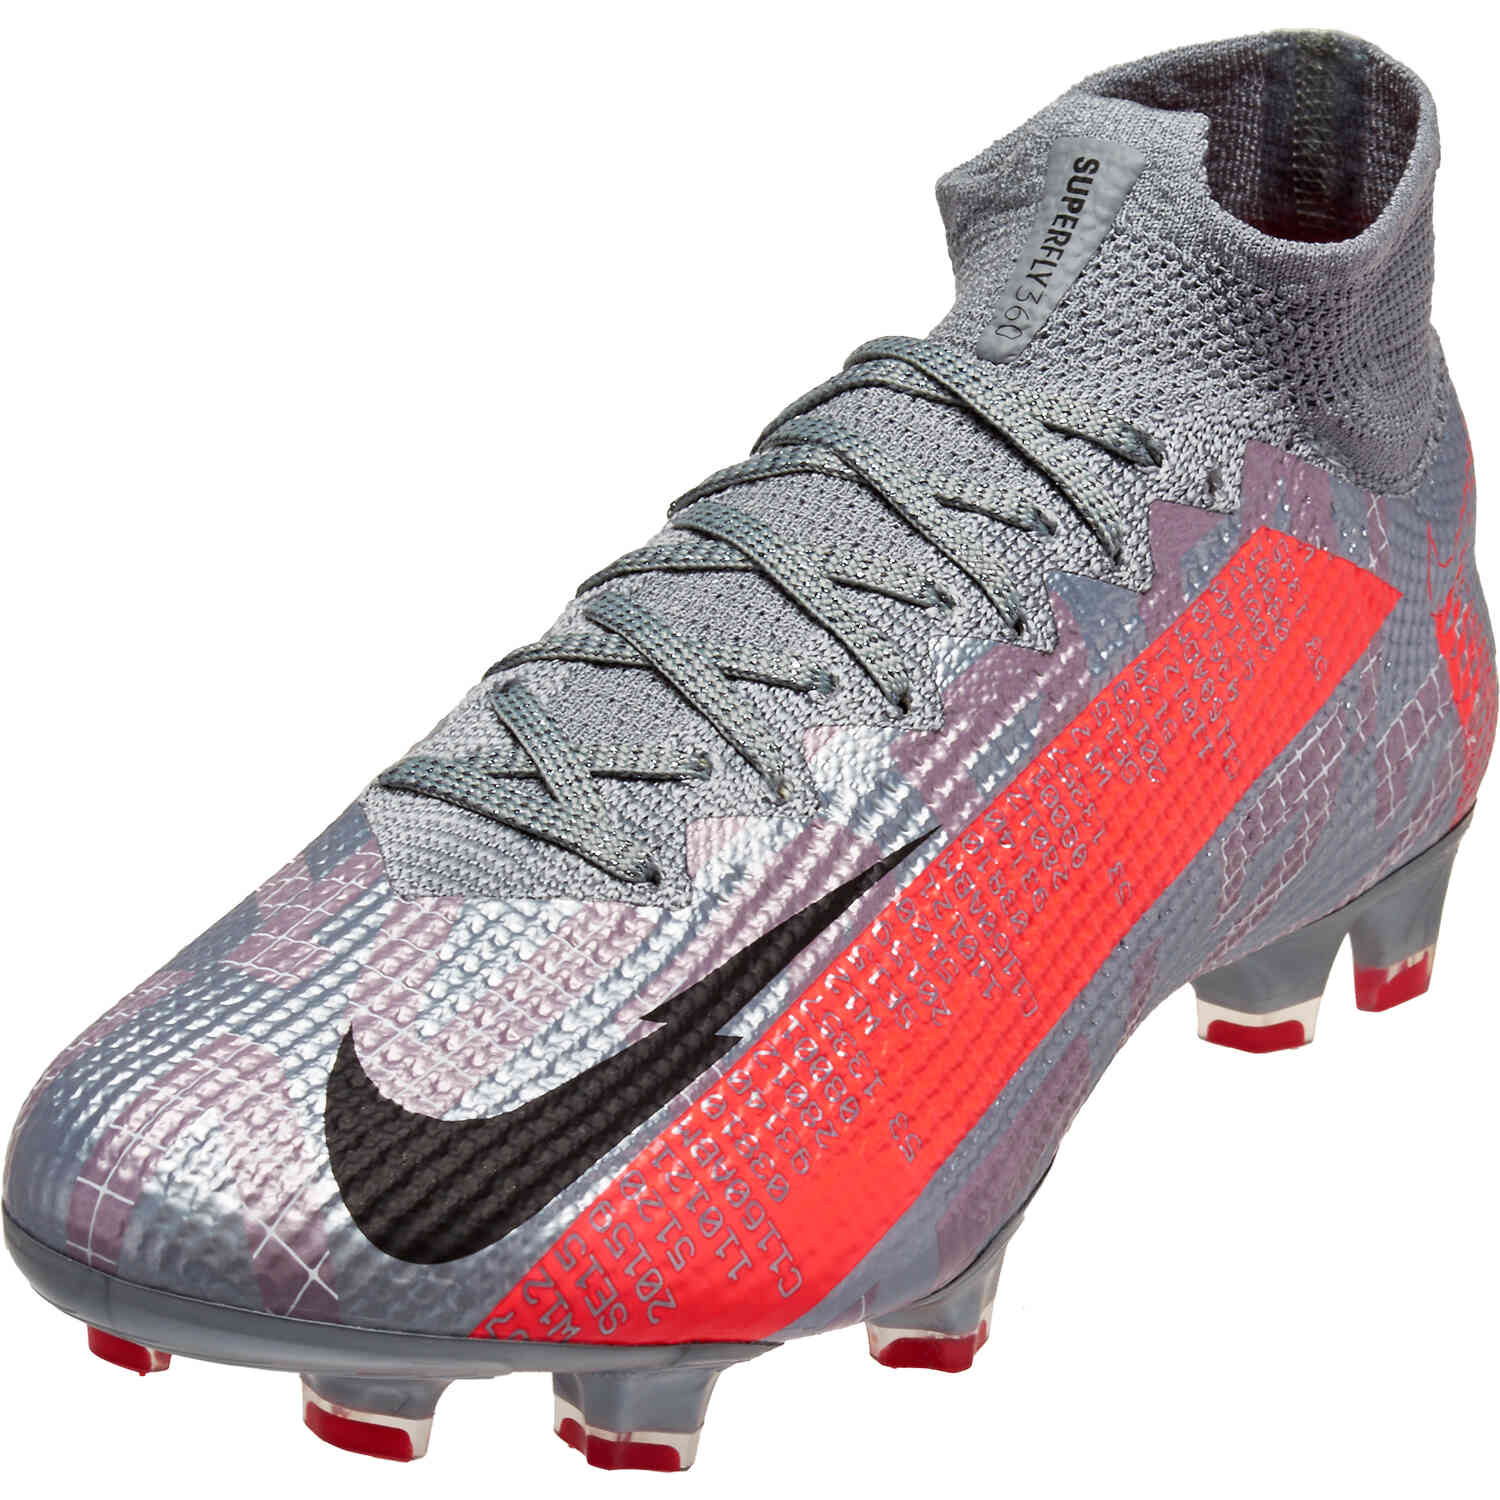 fuente Cortés Máxima  Nike Mercurial Superfly 7 Elite FG - Neighborhood Pack - Soccer Master